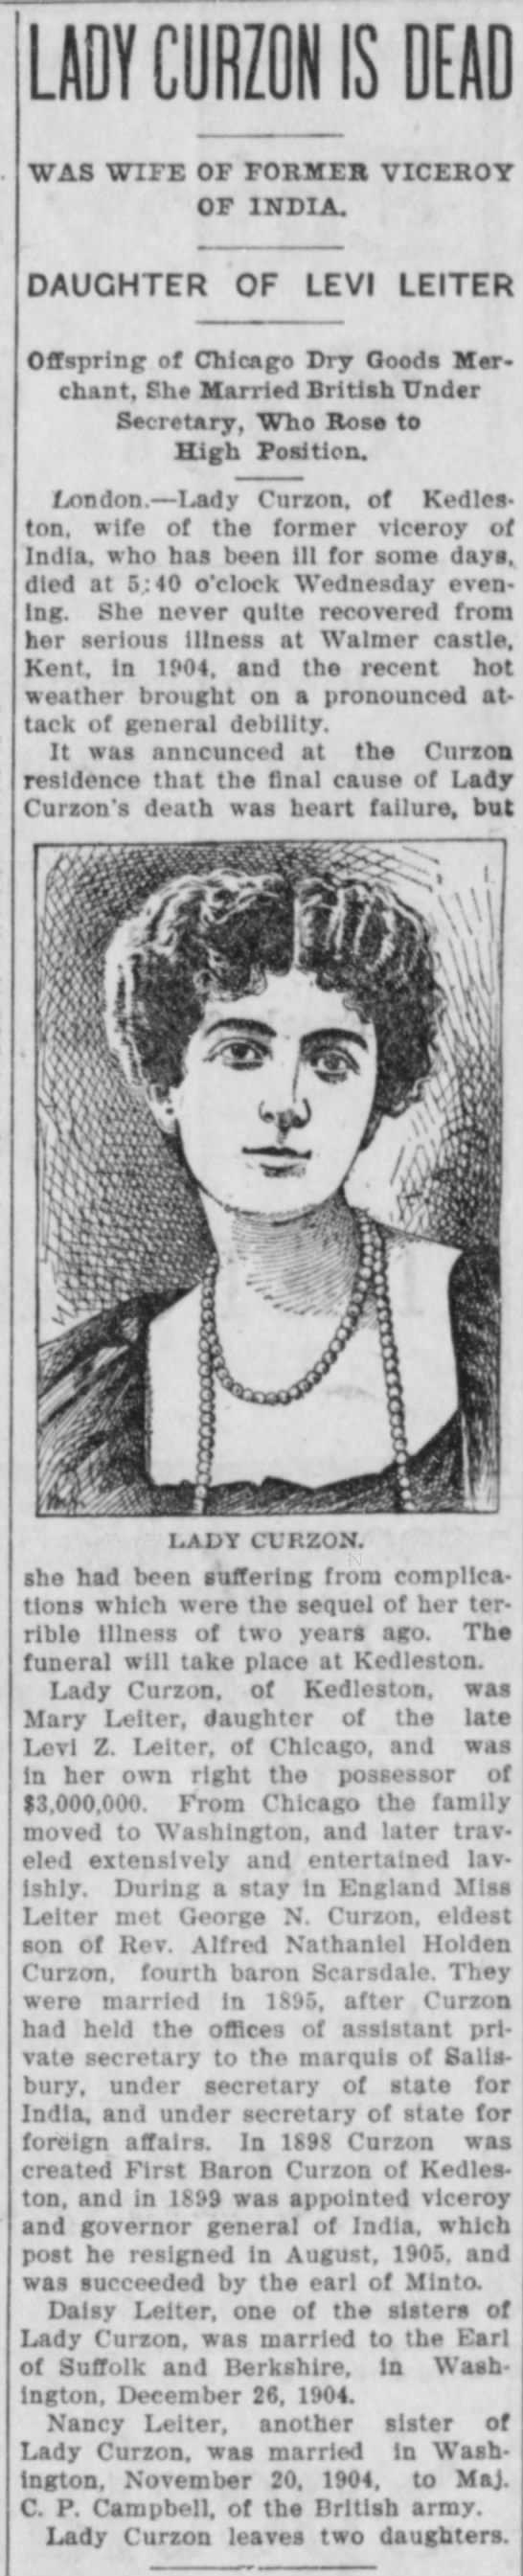 Leiter - LADY CURZONIS DEAD WAS WIFE OF FORMER VICEROY...